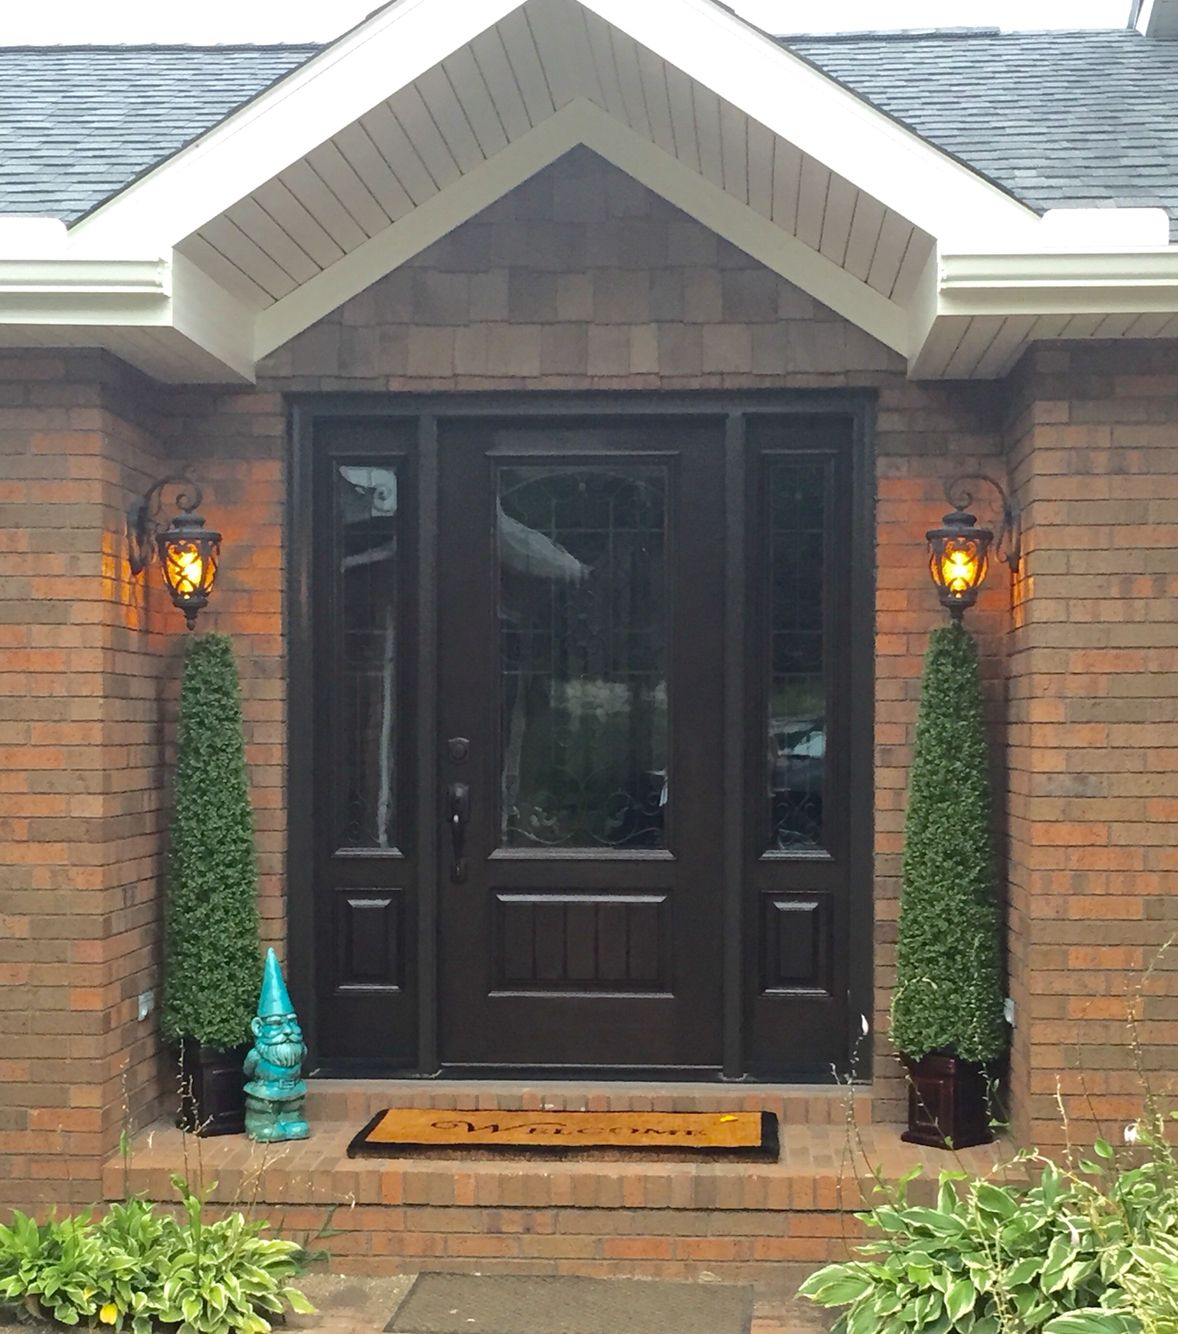 A dark ProVia front door makes a dramatic entryway against brick. We install ProVia doors in the Minneapolis area. //.replacementwindowsmpls.com & A dark ProVia front door makes a dramatic entryway against brick. We ...